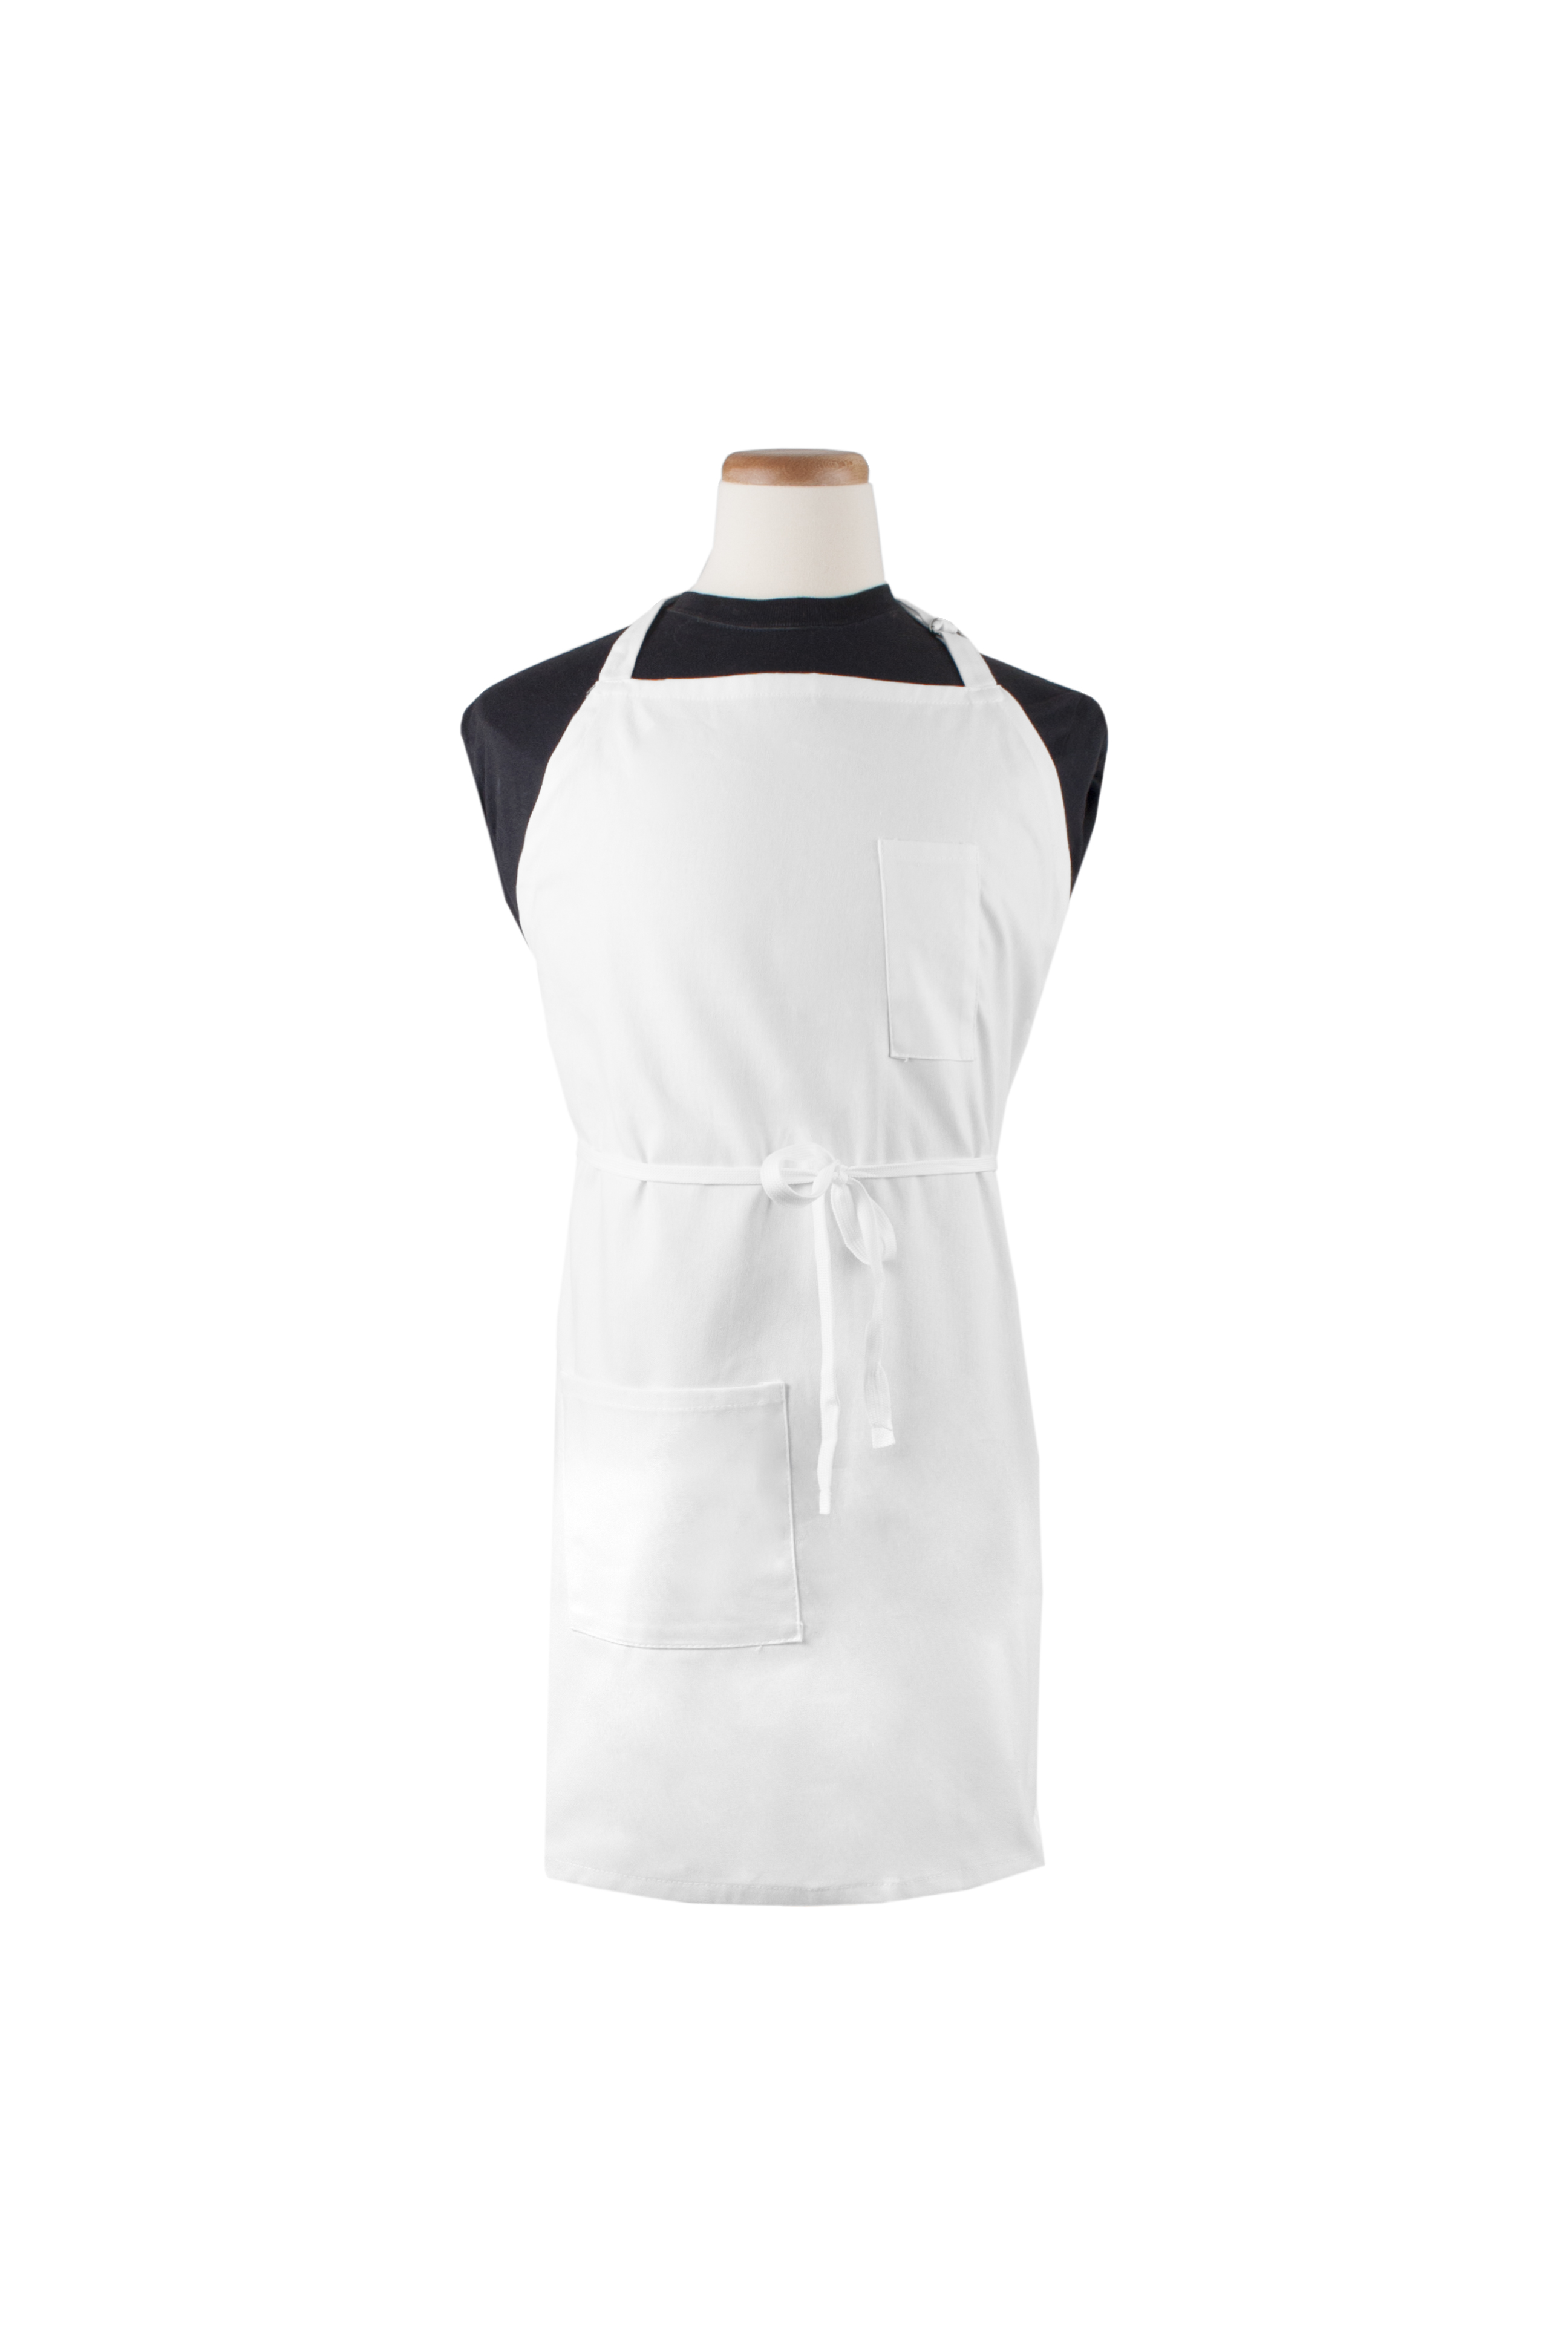 "3-Pocket Bib Apron, 32"" x 32""L"